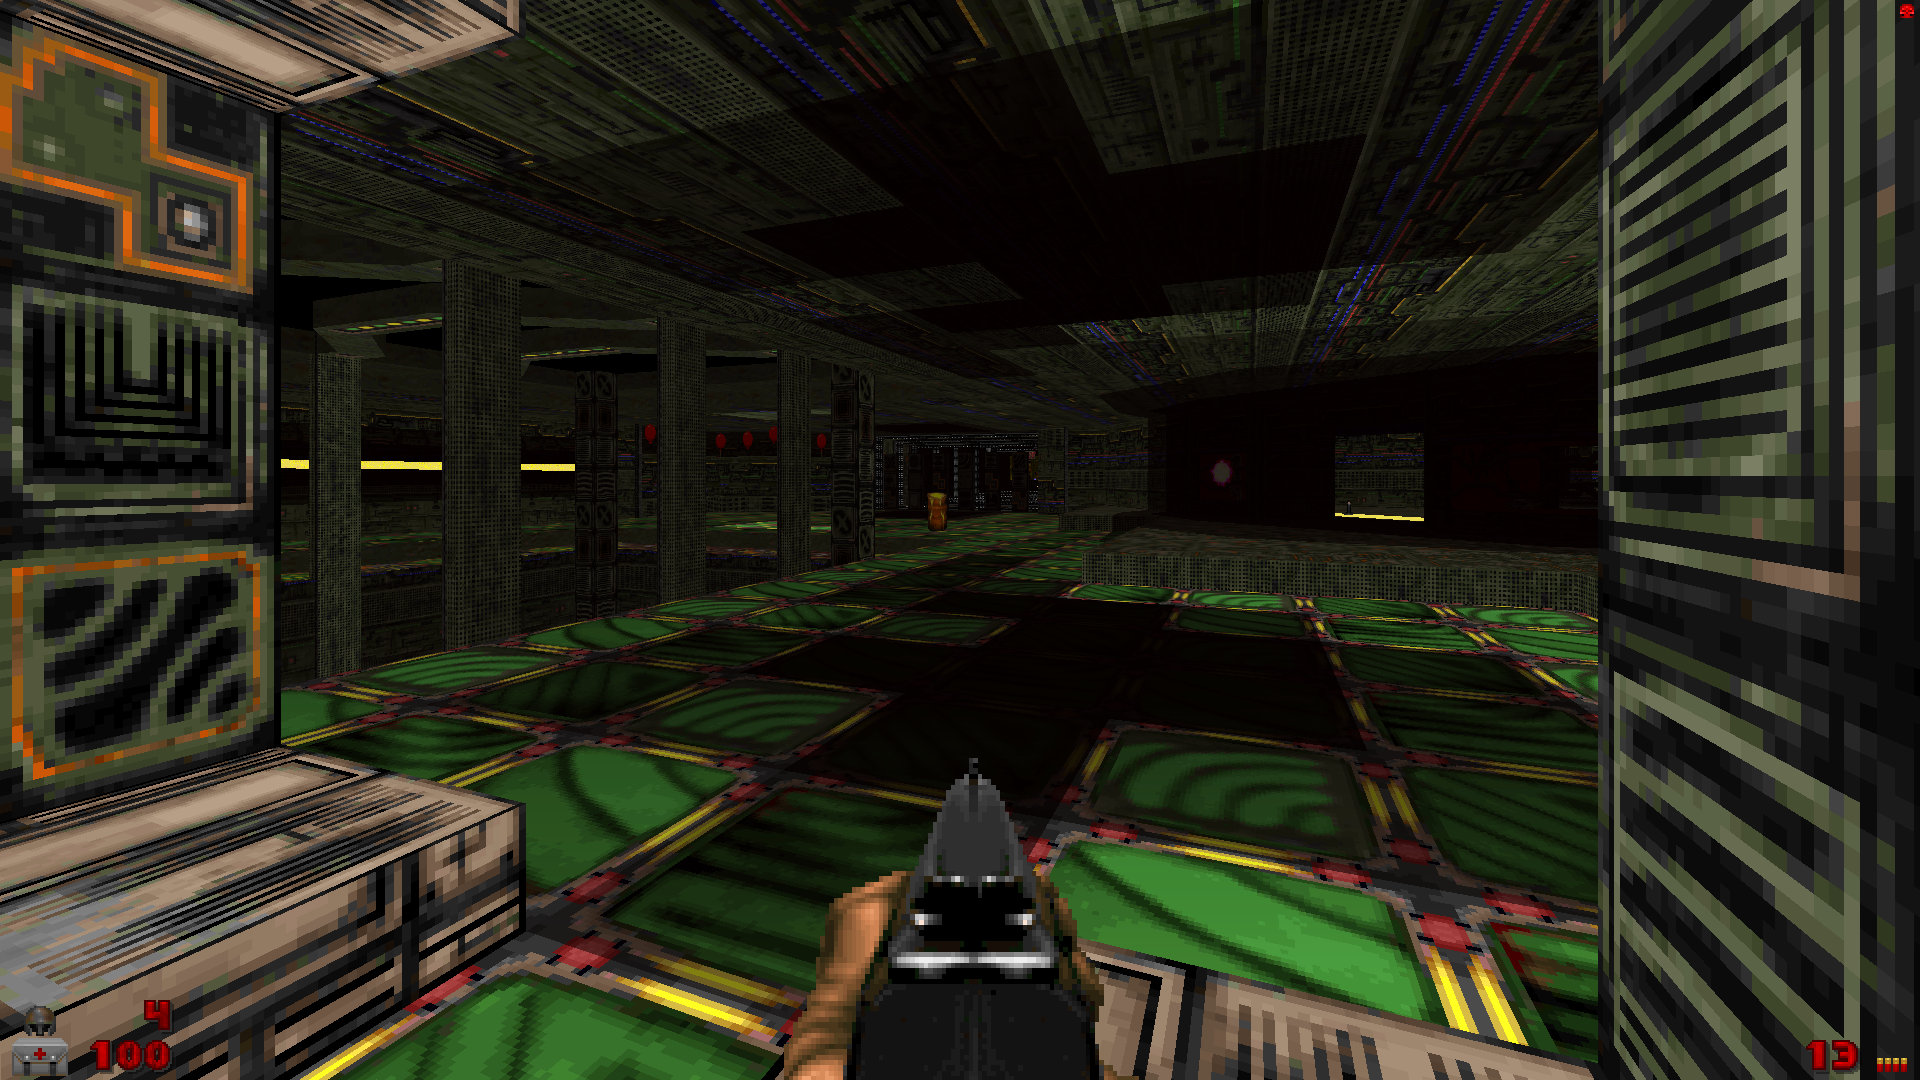 Screenshot_Doom_20190902_205145.png.a03a62a174cd2911f0d03b830d469bbe.png